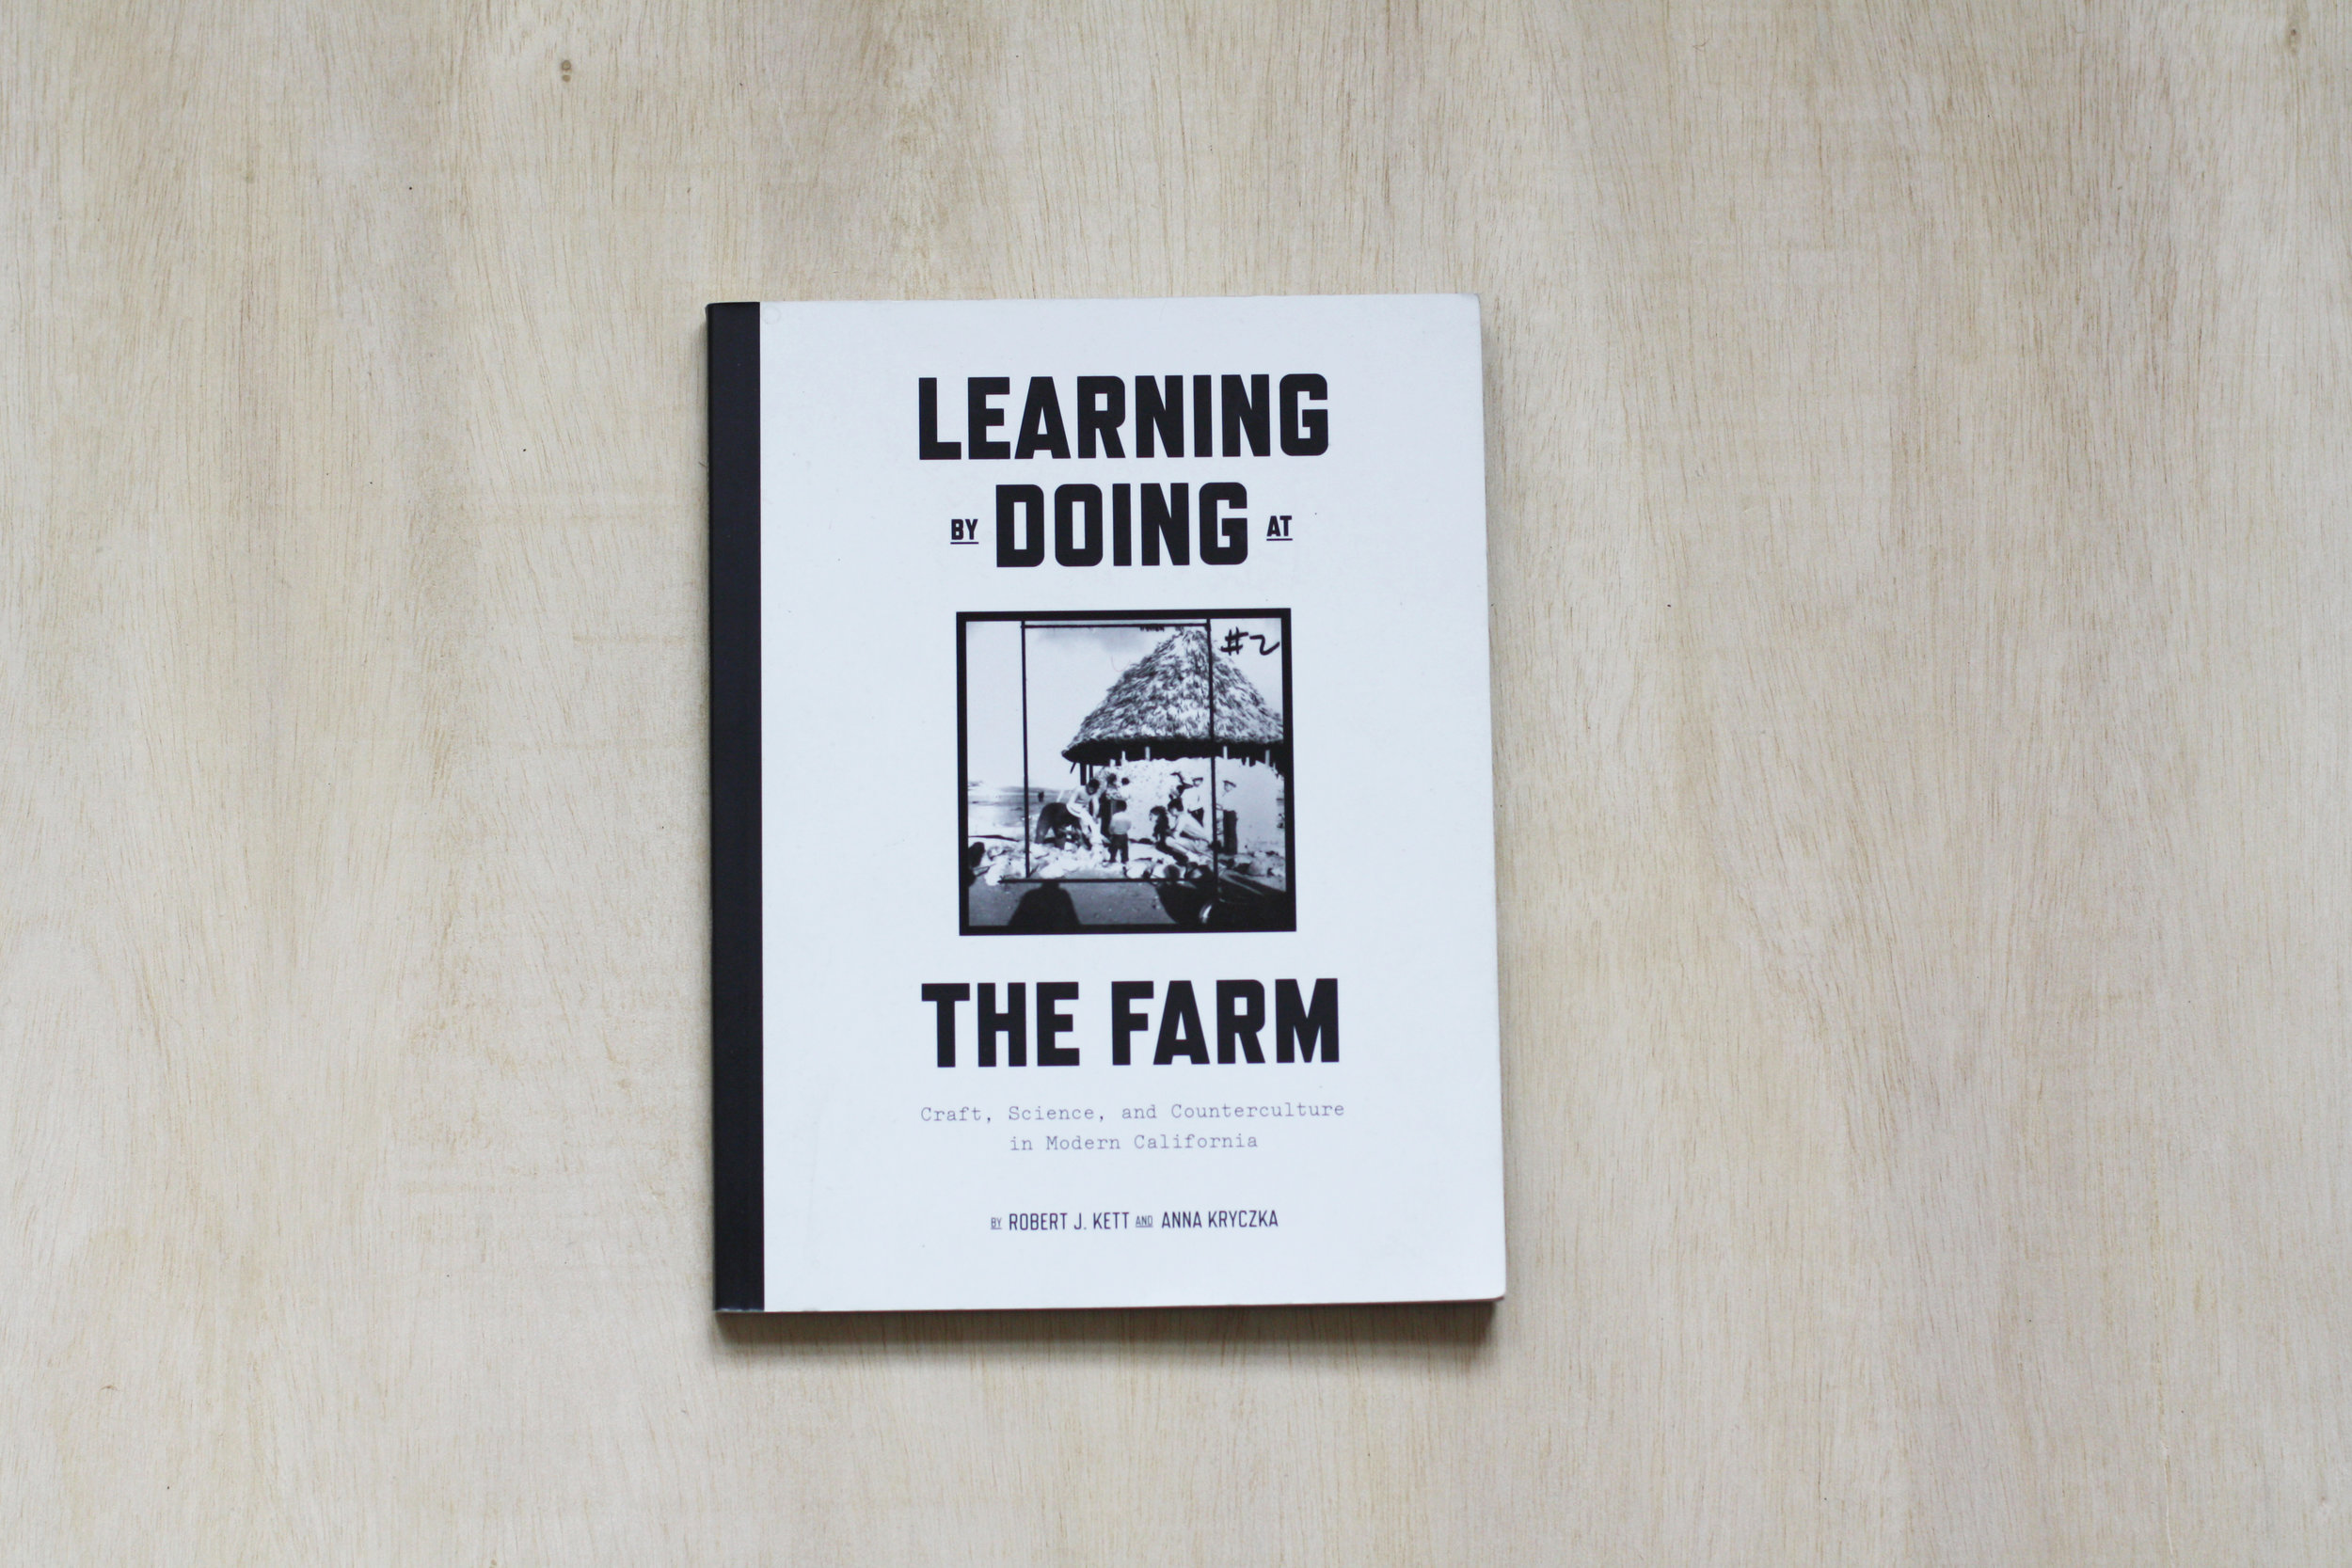 Learning by Doing on the Farm  edited by Robert J. Kett and Anna Kryczka